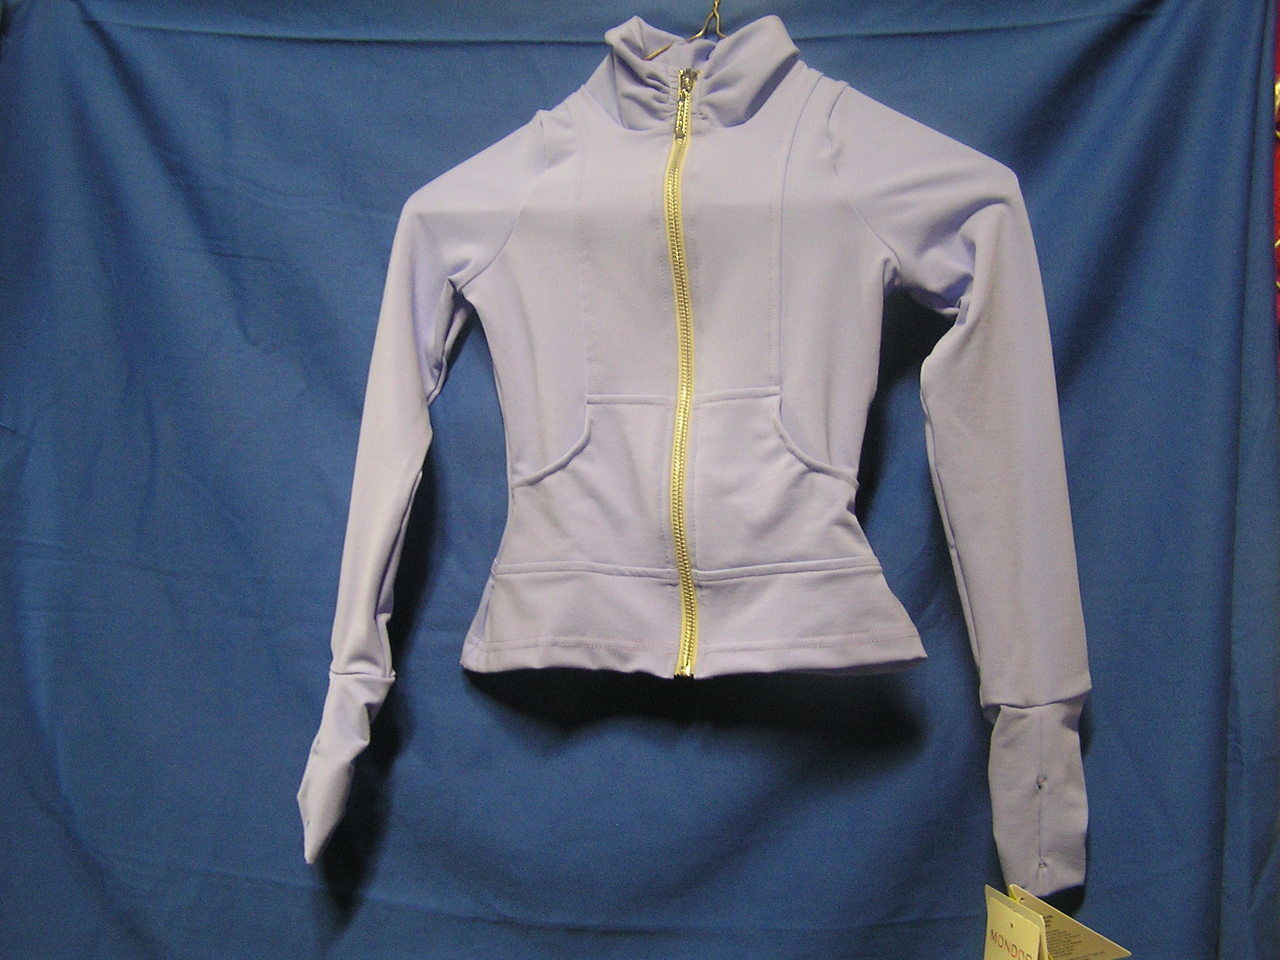 Primary image for Mondor Model 34808 Skating Jacket Periwinkle Size 4-6